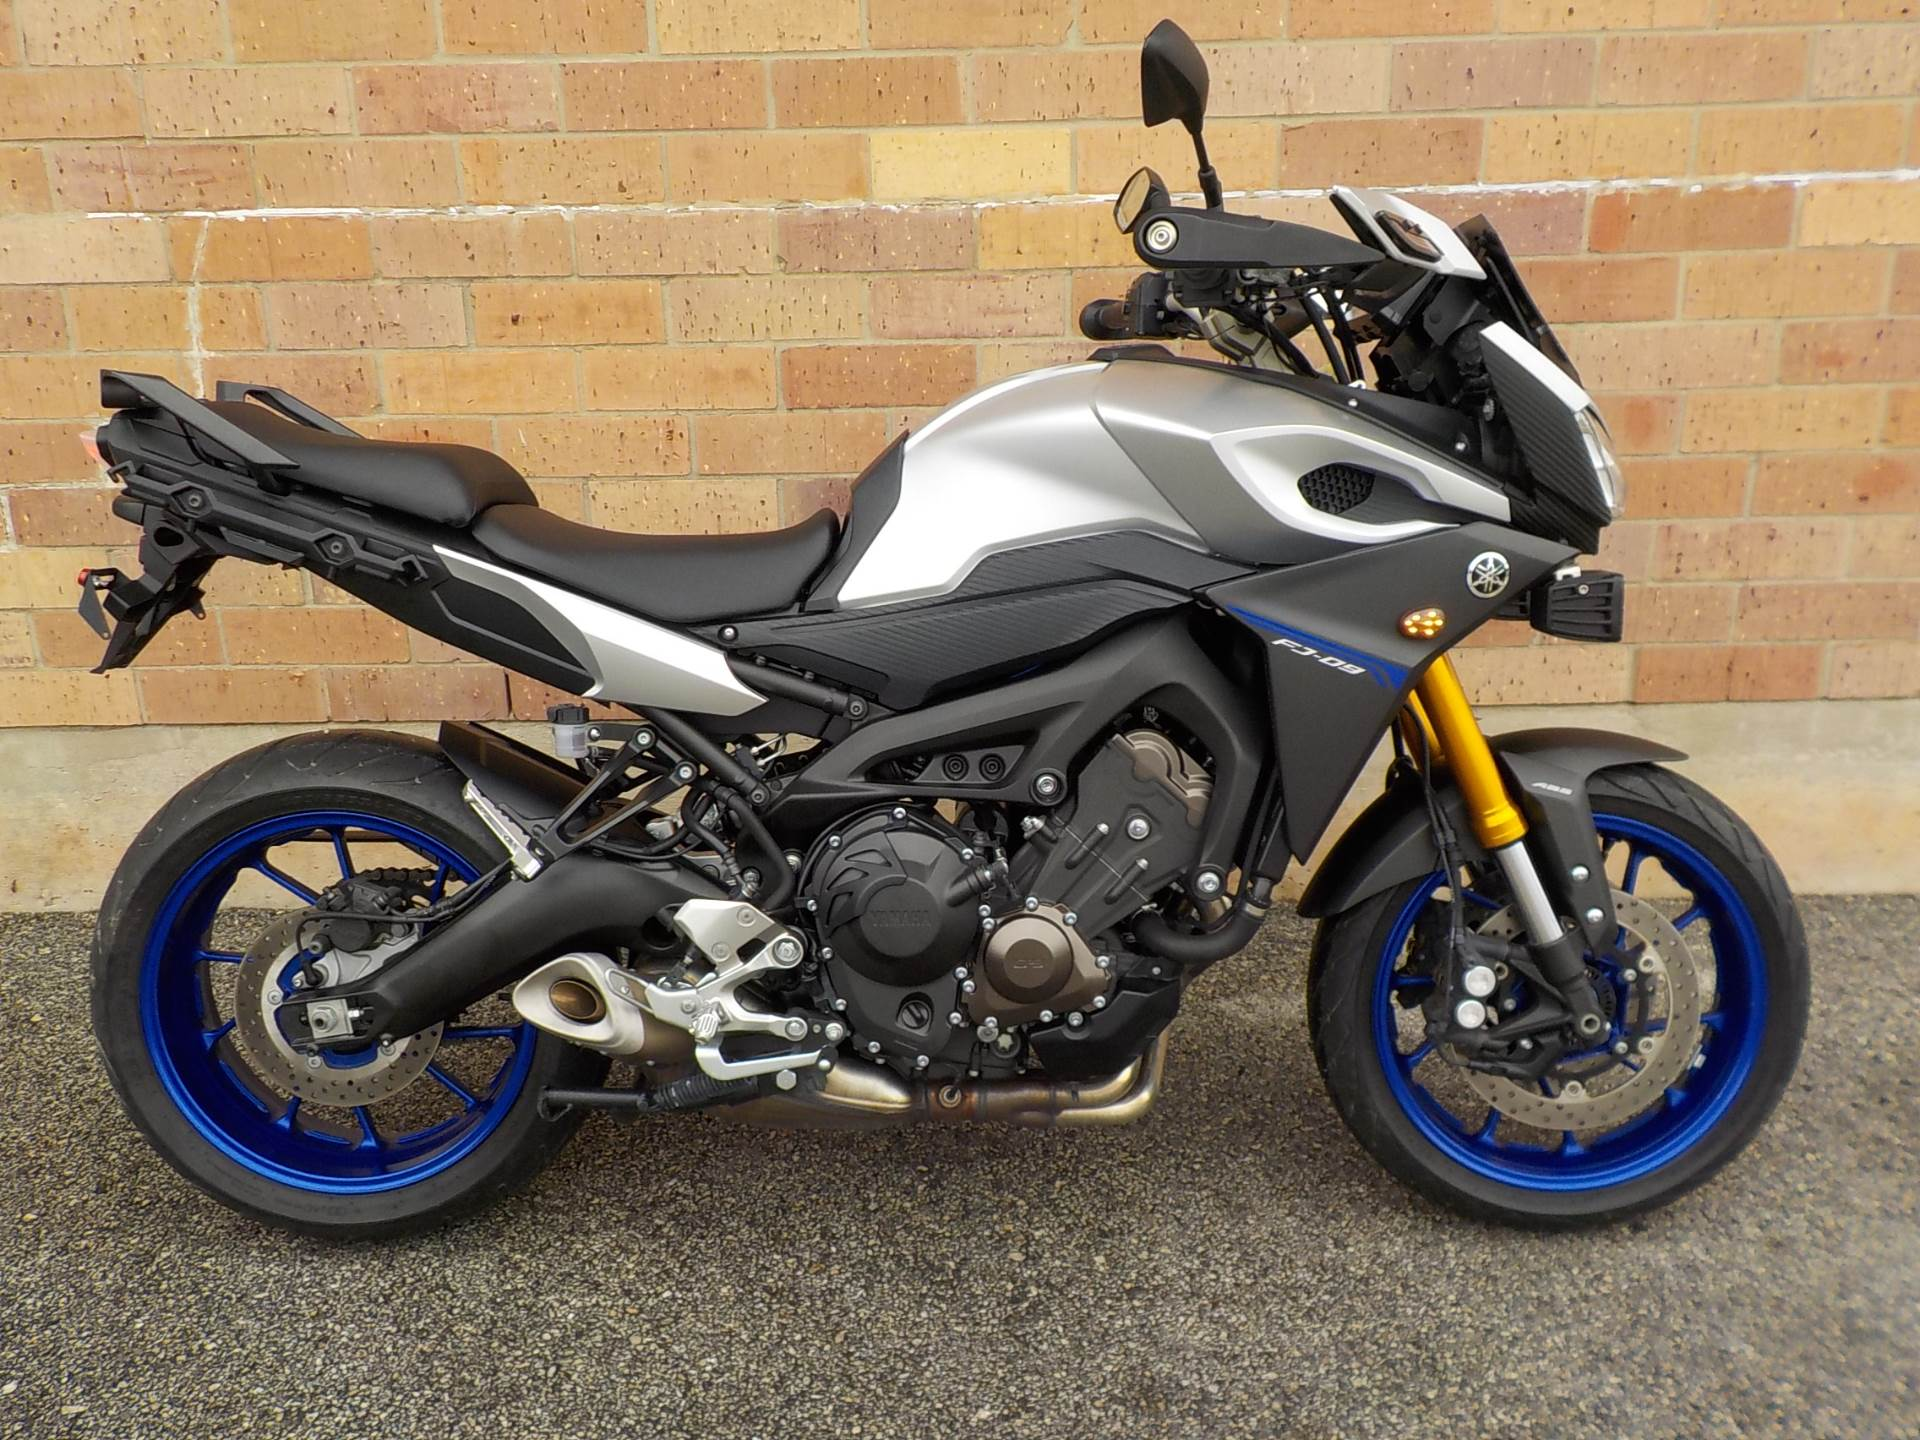 2016 Yamaha FJ-09 for sale 82847